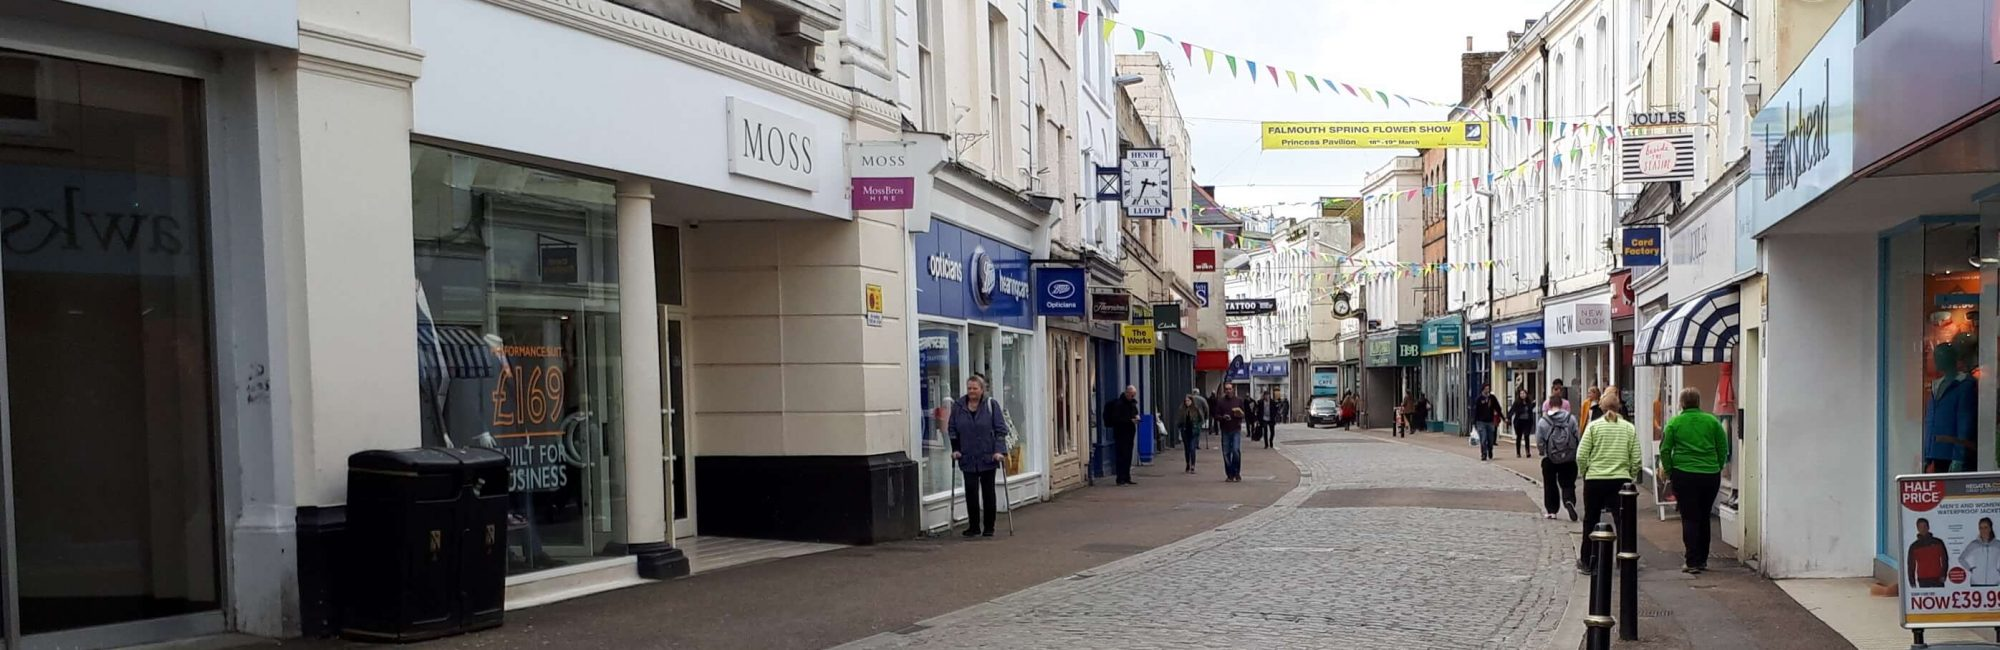 Shopping in Market Street Falmouth